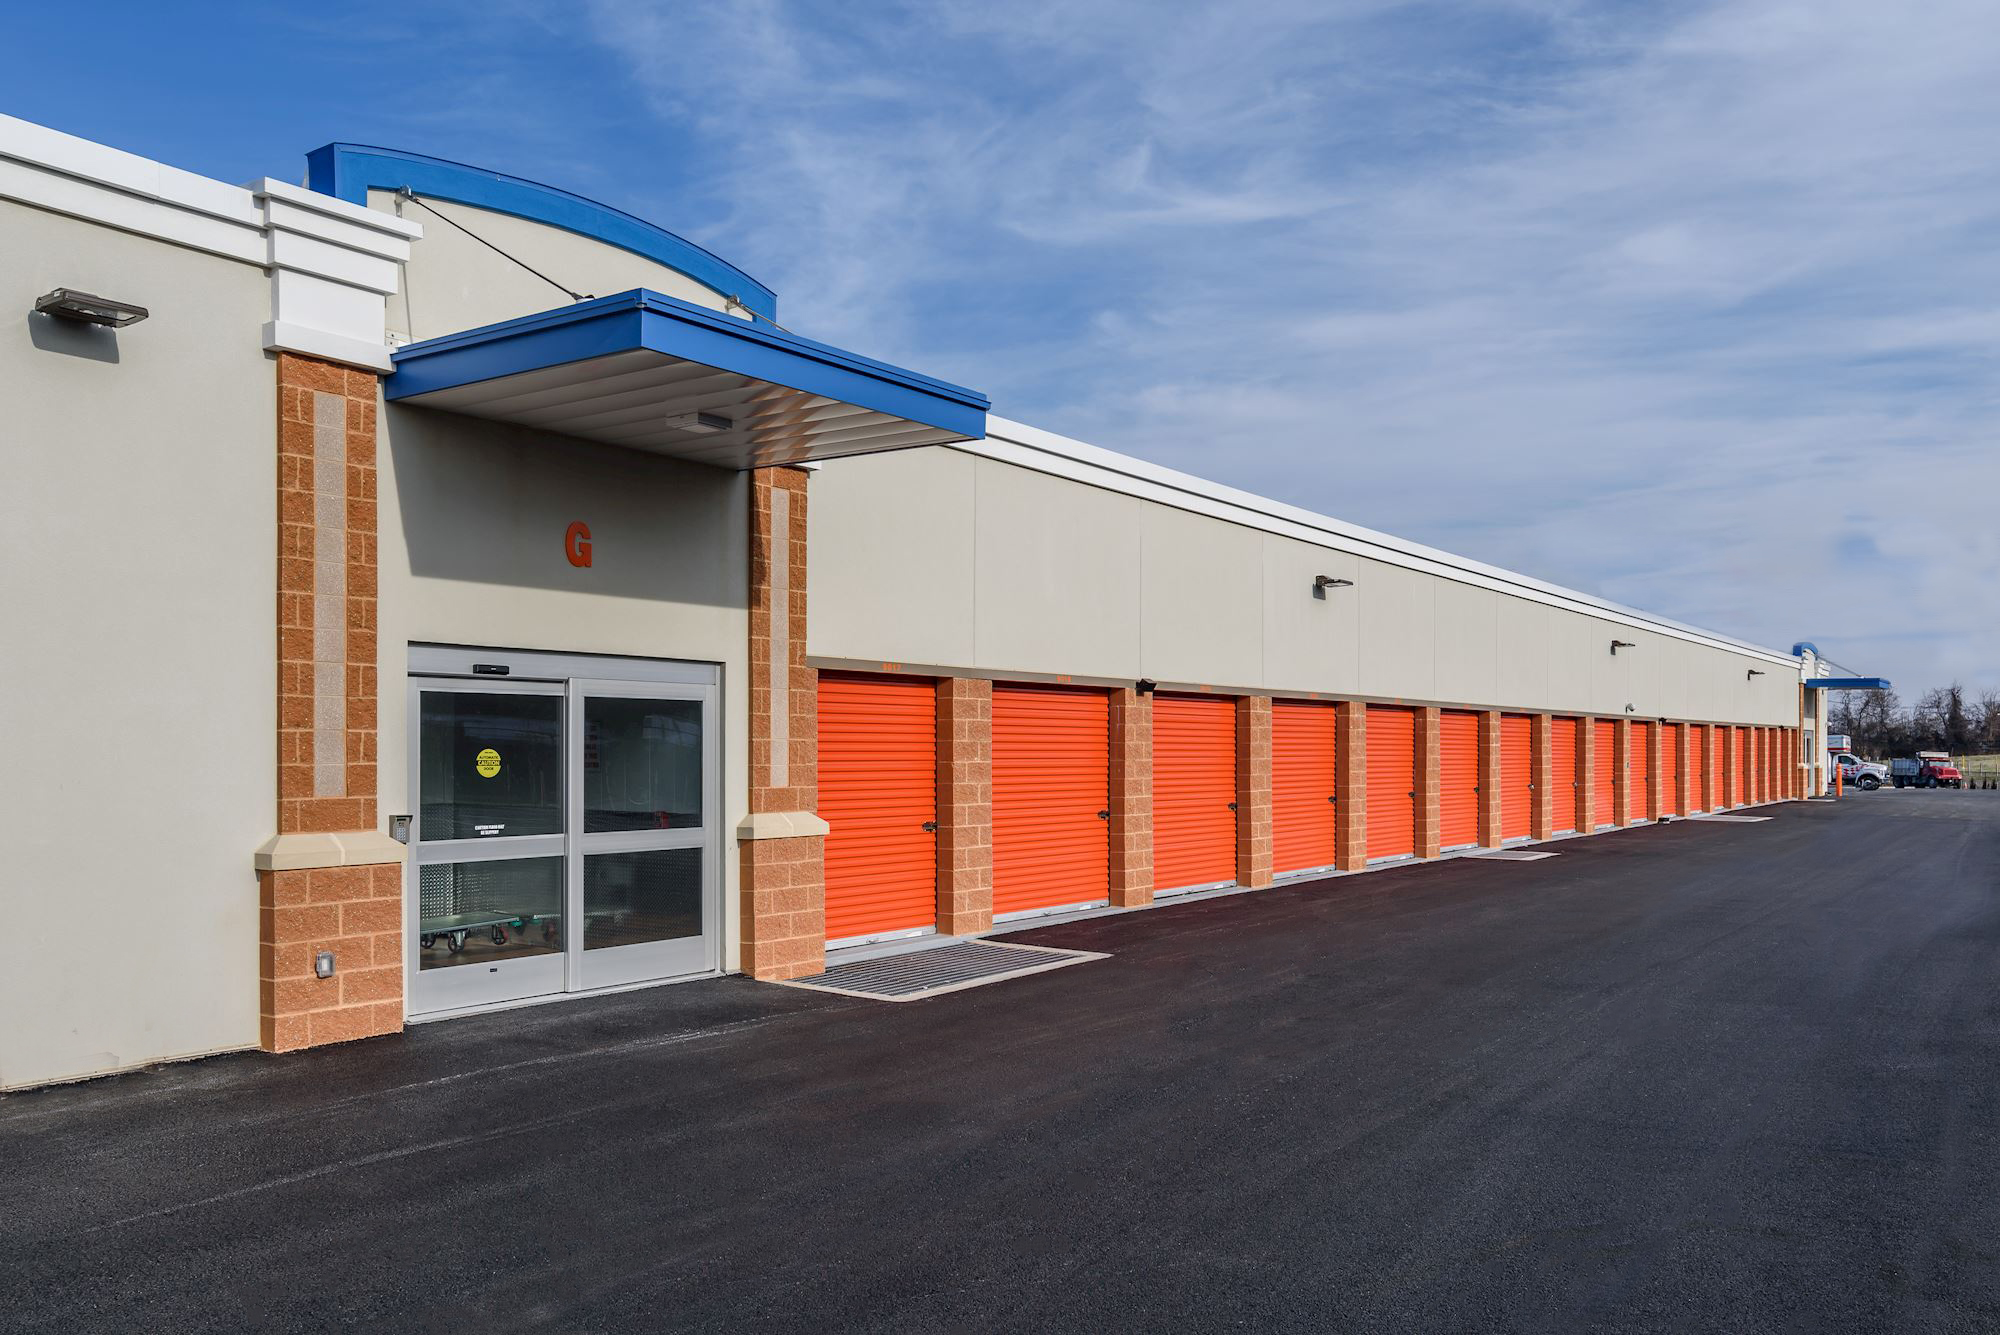 YourSpace Storage at Nottingham - Self Storage Units Near White Marsh, Perry Hall, and Nottingham, MD